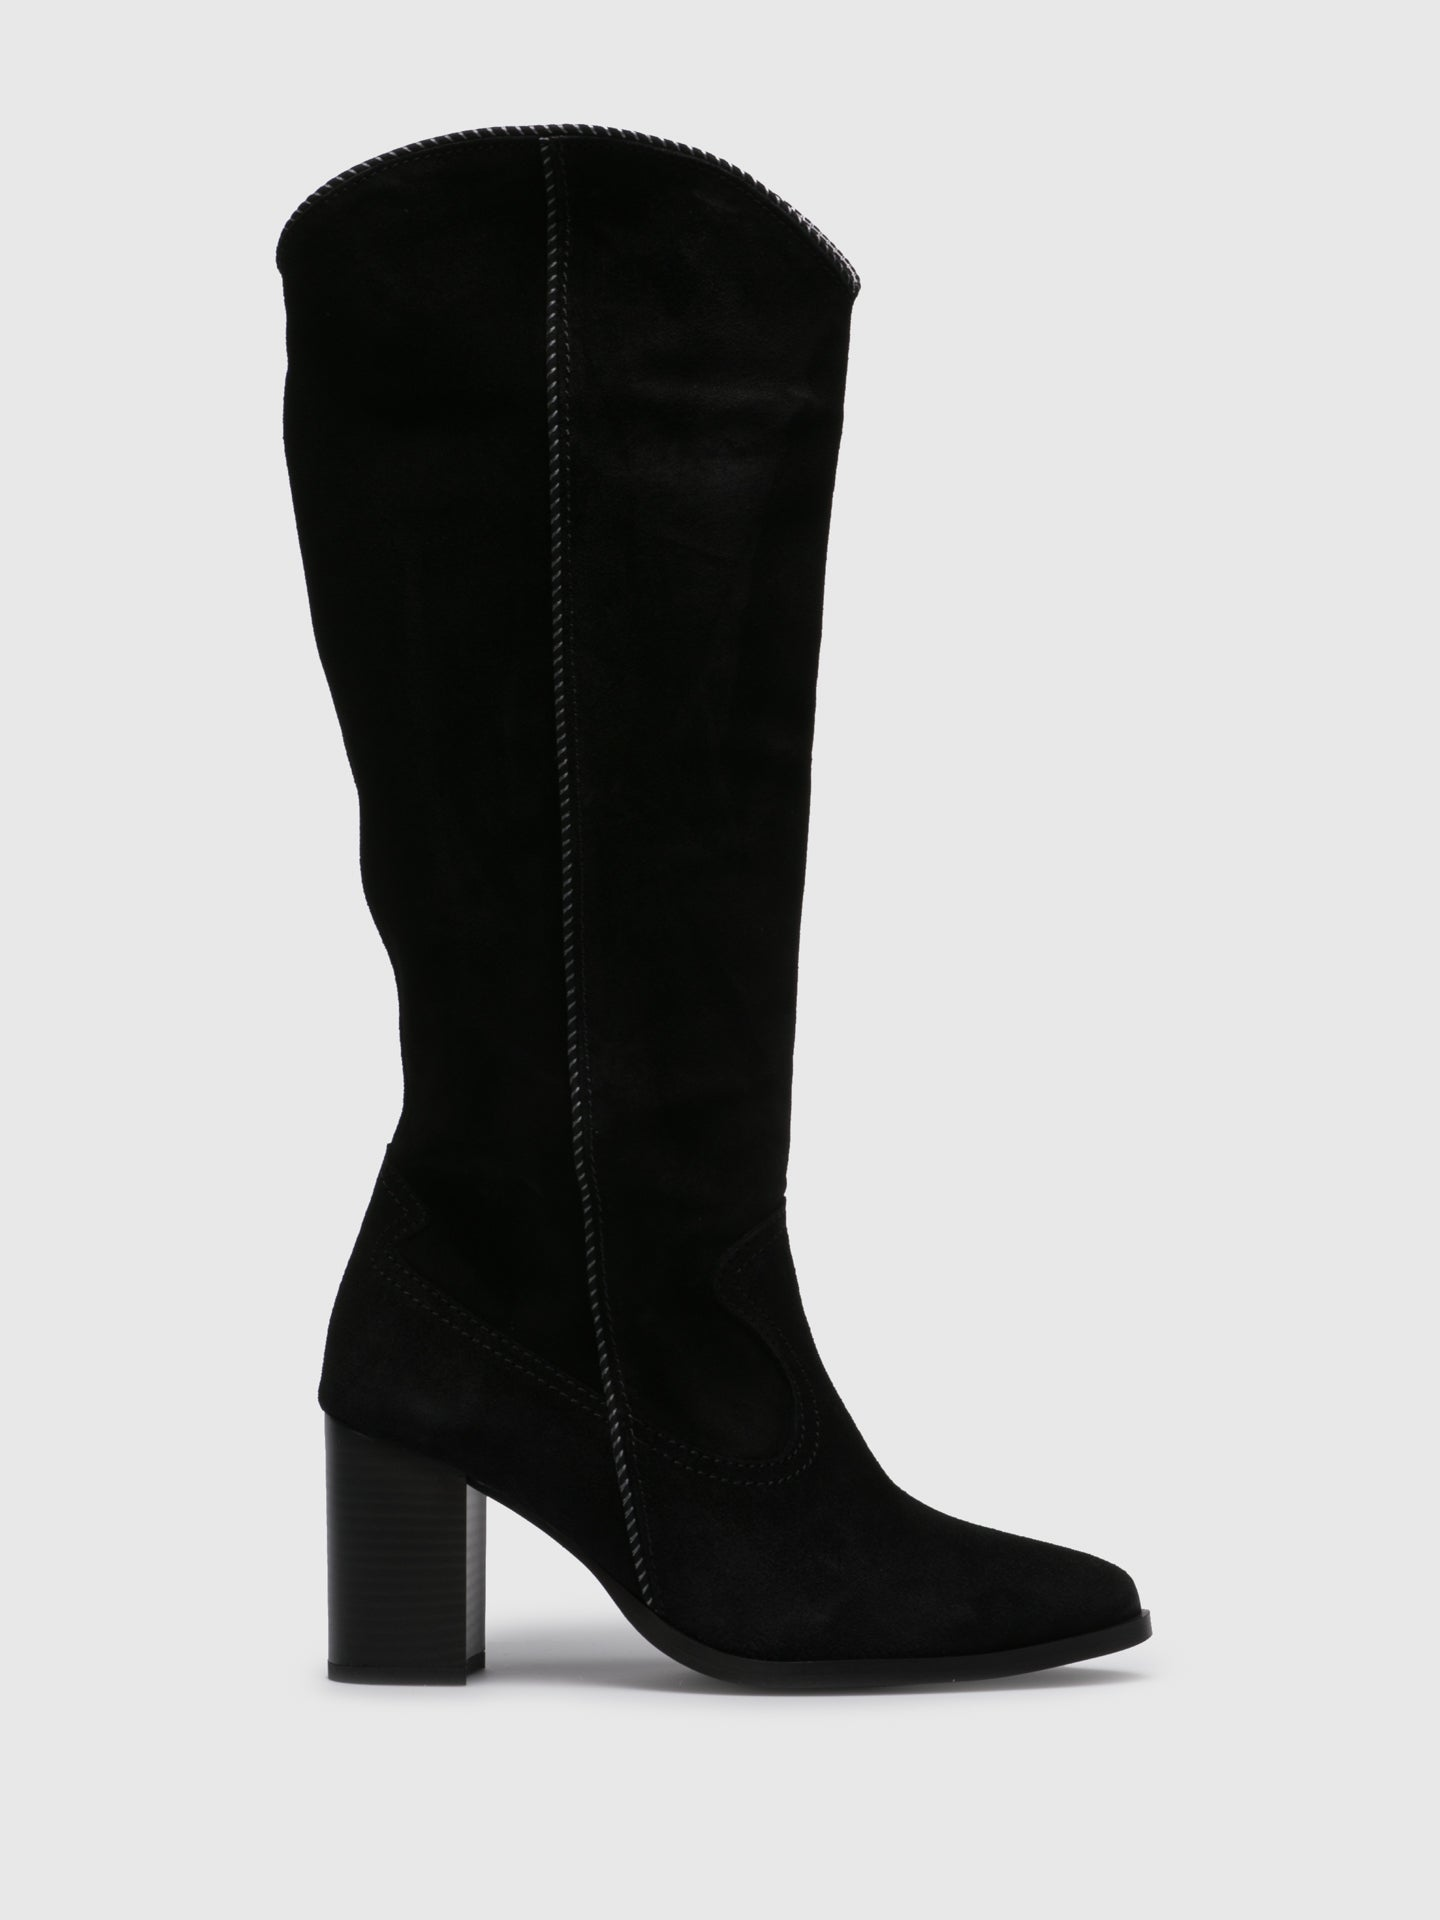 Foreva Black Pointed Toe Boots